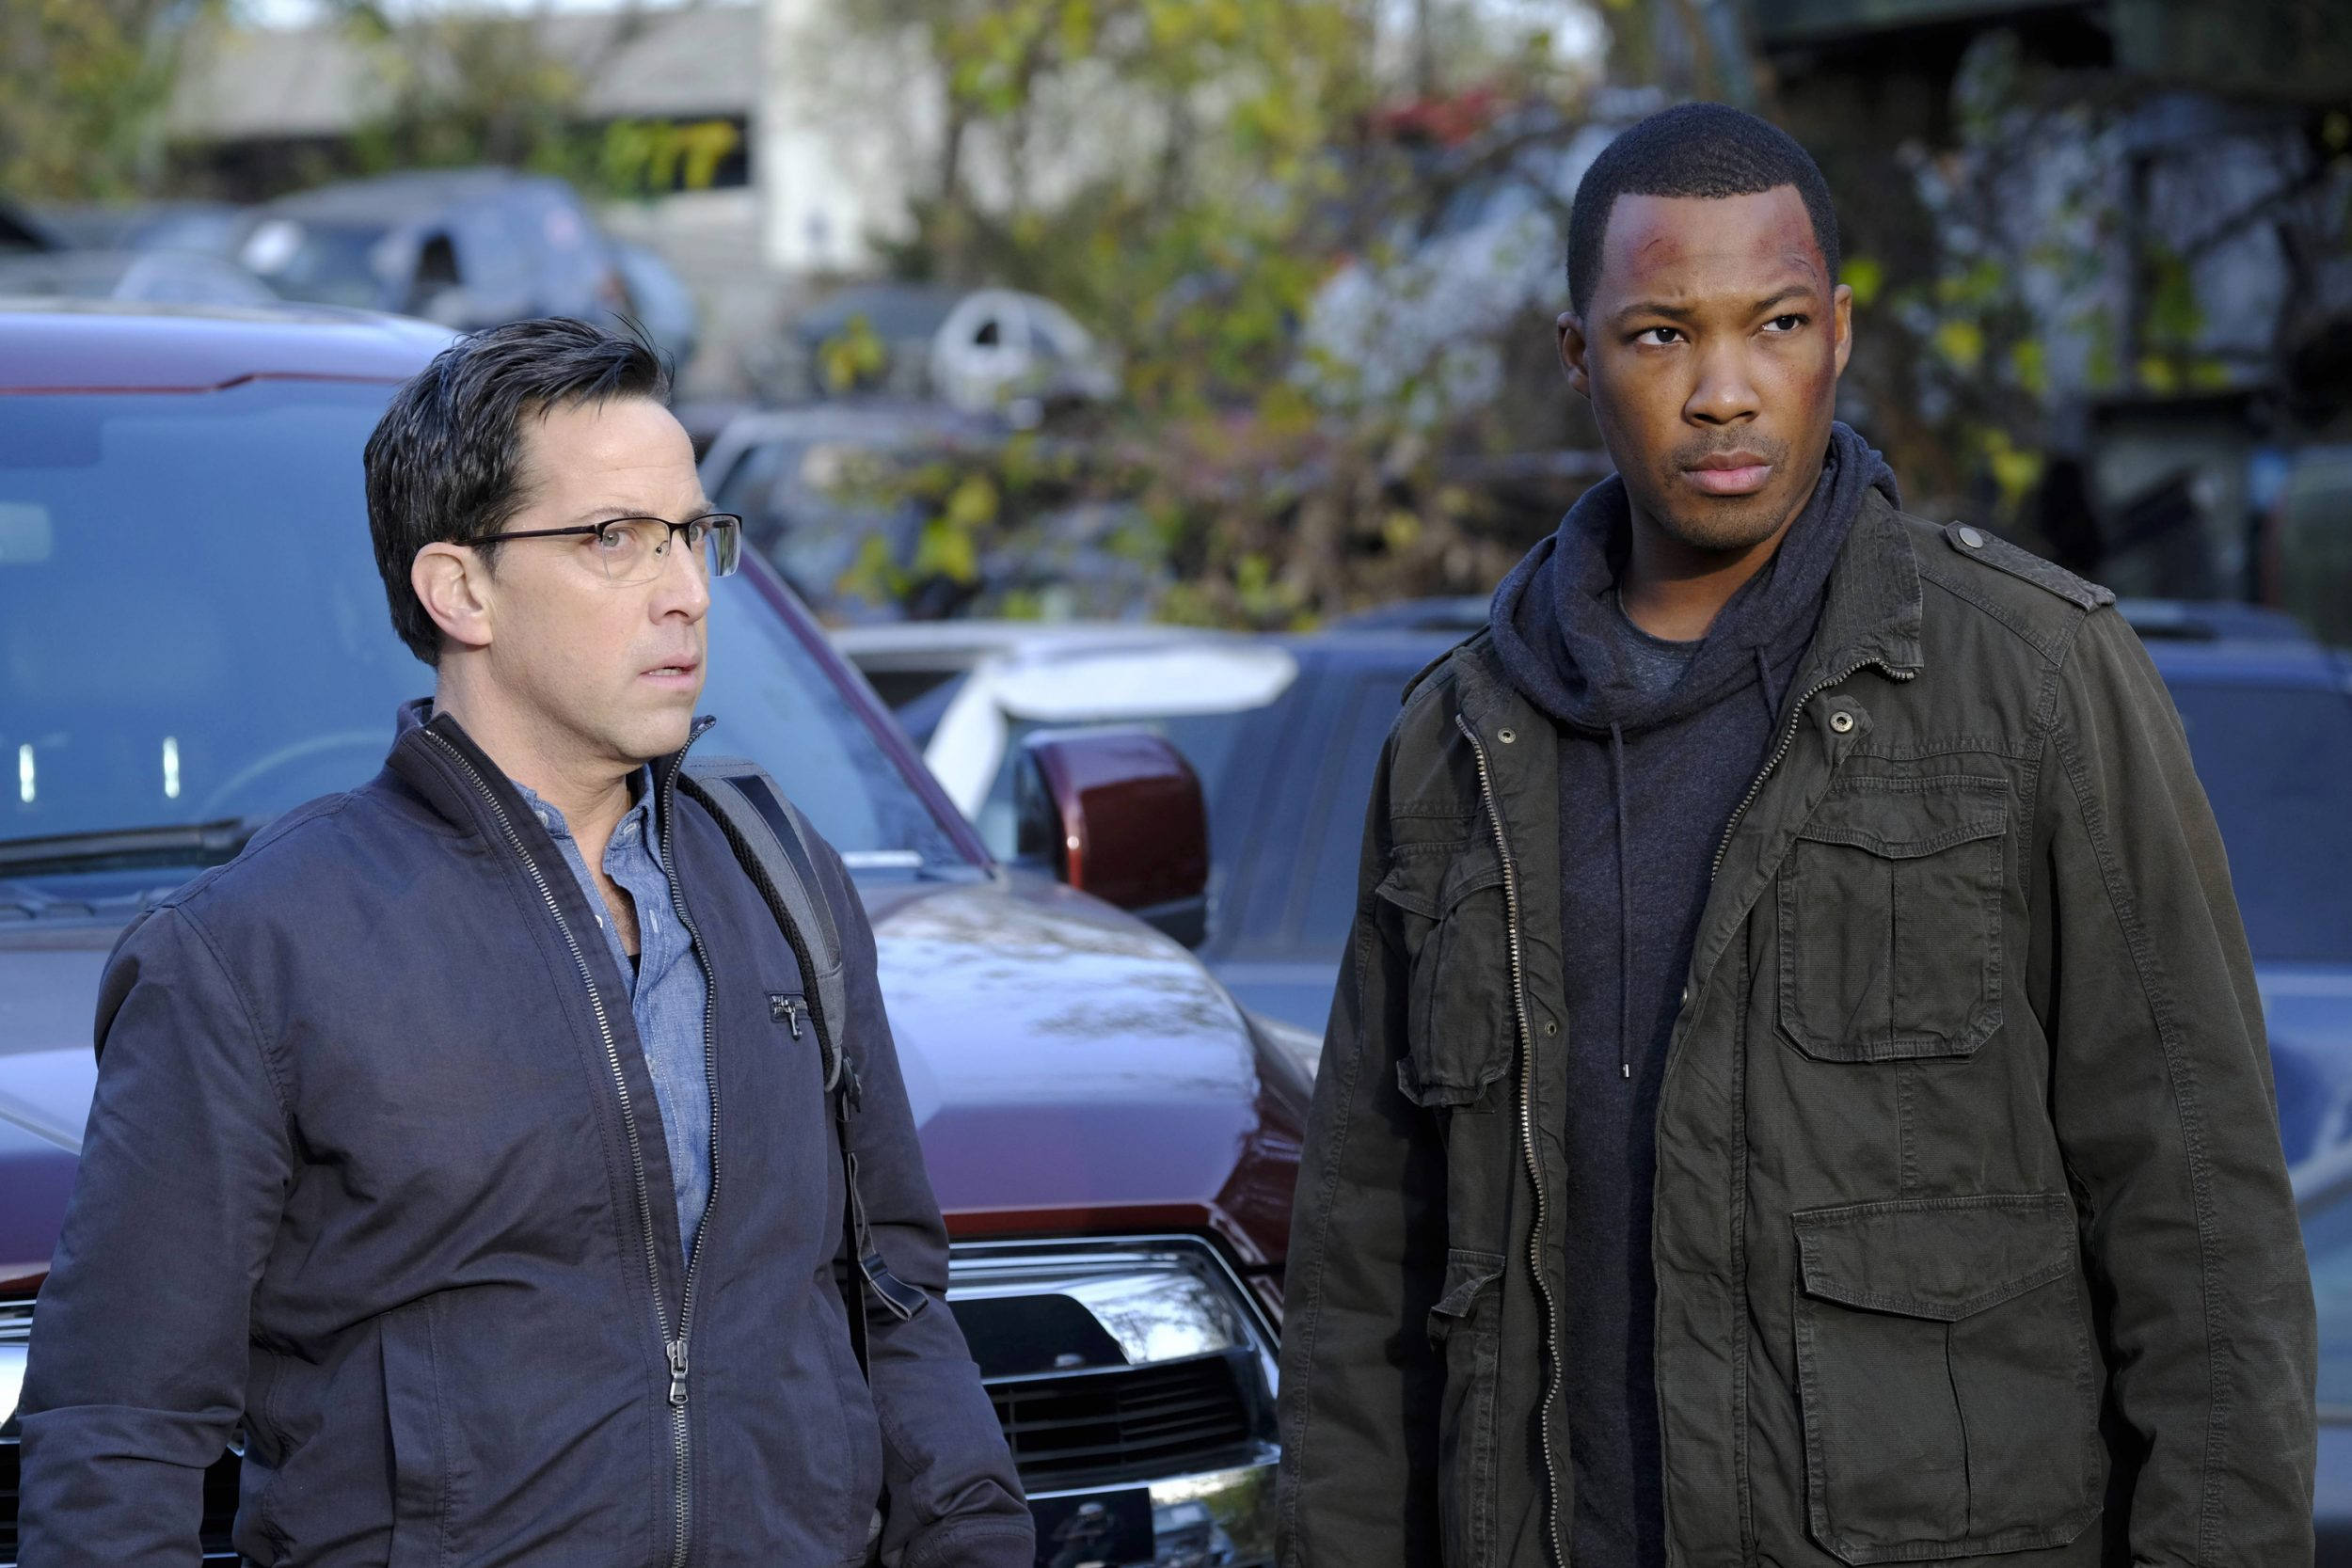 24: LEGACY: L-R: Dan Bucatinsky and Corey Hawkins in the new Ò6:00 PM-7:00 PMÓ episode of 24: LEGACY airing Monday, March 13 (8:00-9:01 PM ET/PT) on FOX. ©2017 Fox Broadcasting Co. Cr: Guy D'Alema/FOX